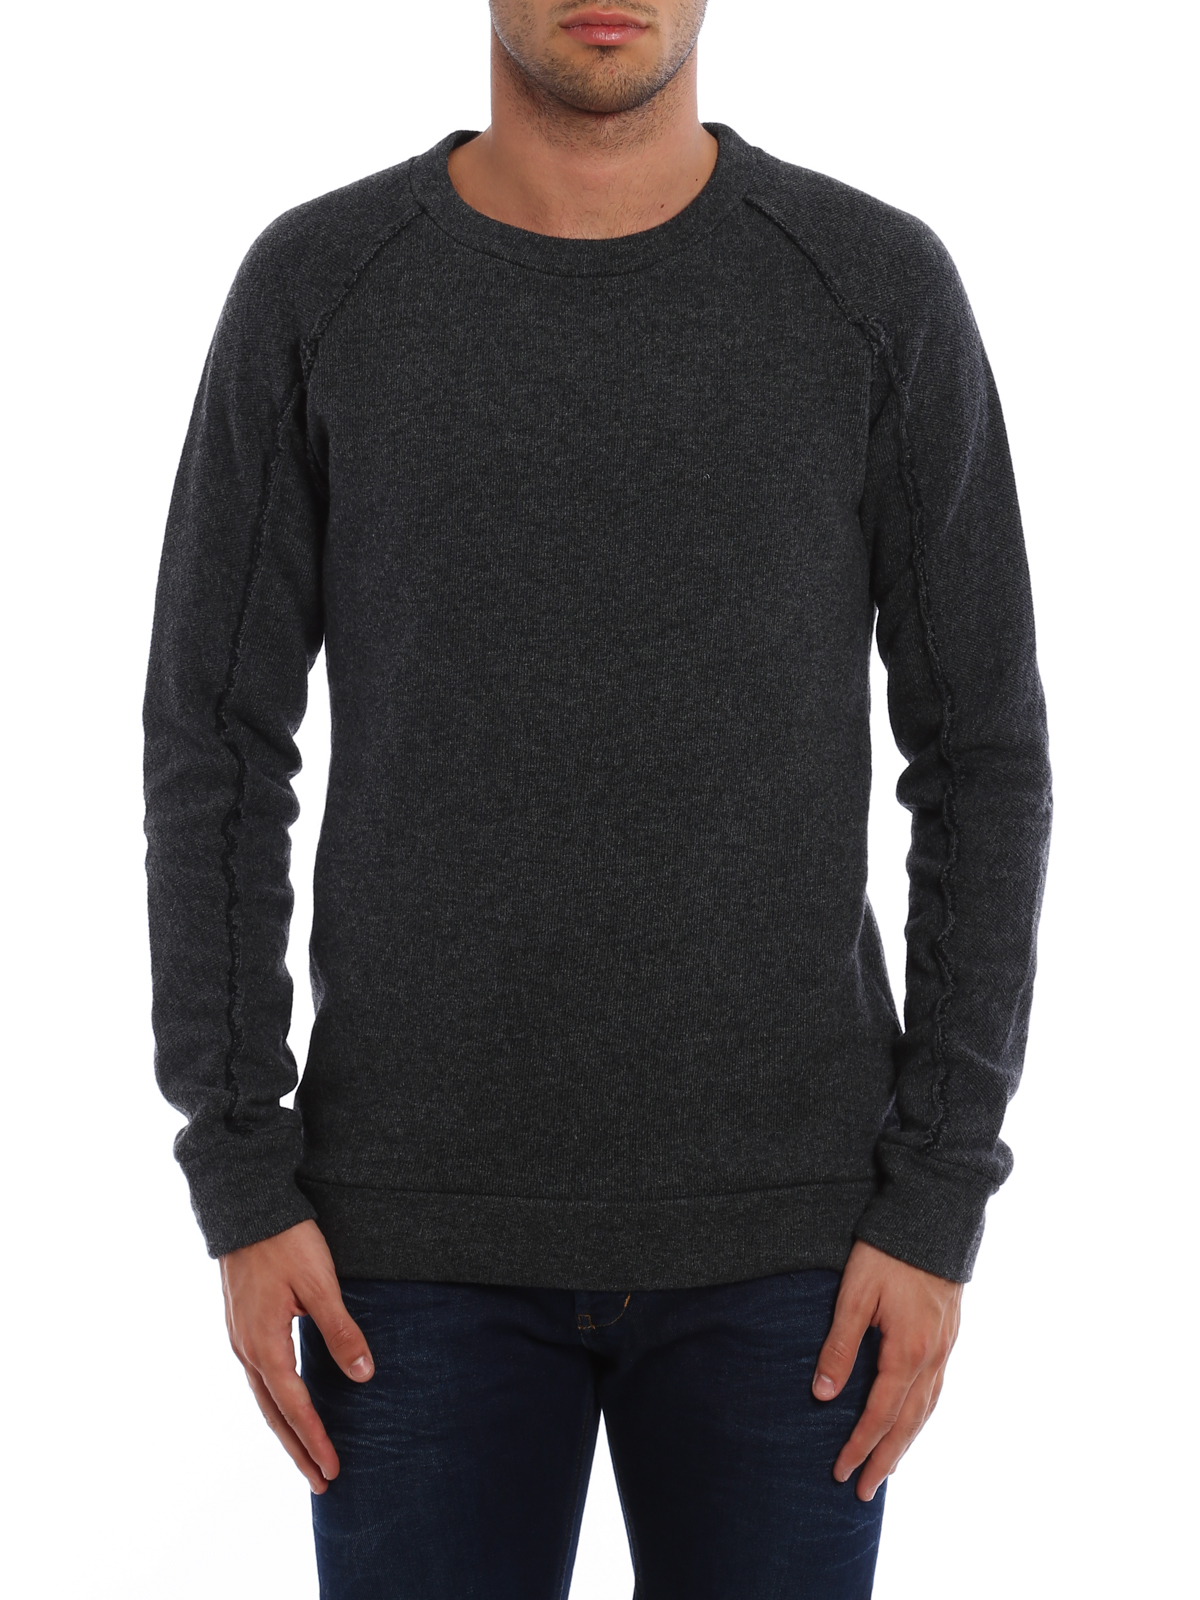 Melange cotton and wool sweater by Dondup - Sweatshirts & Sweaters ...